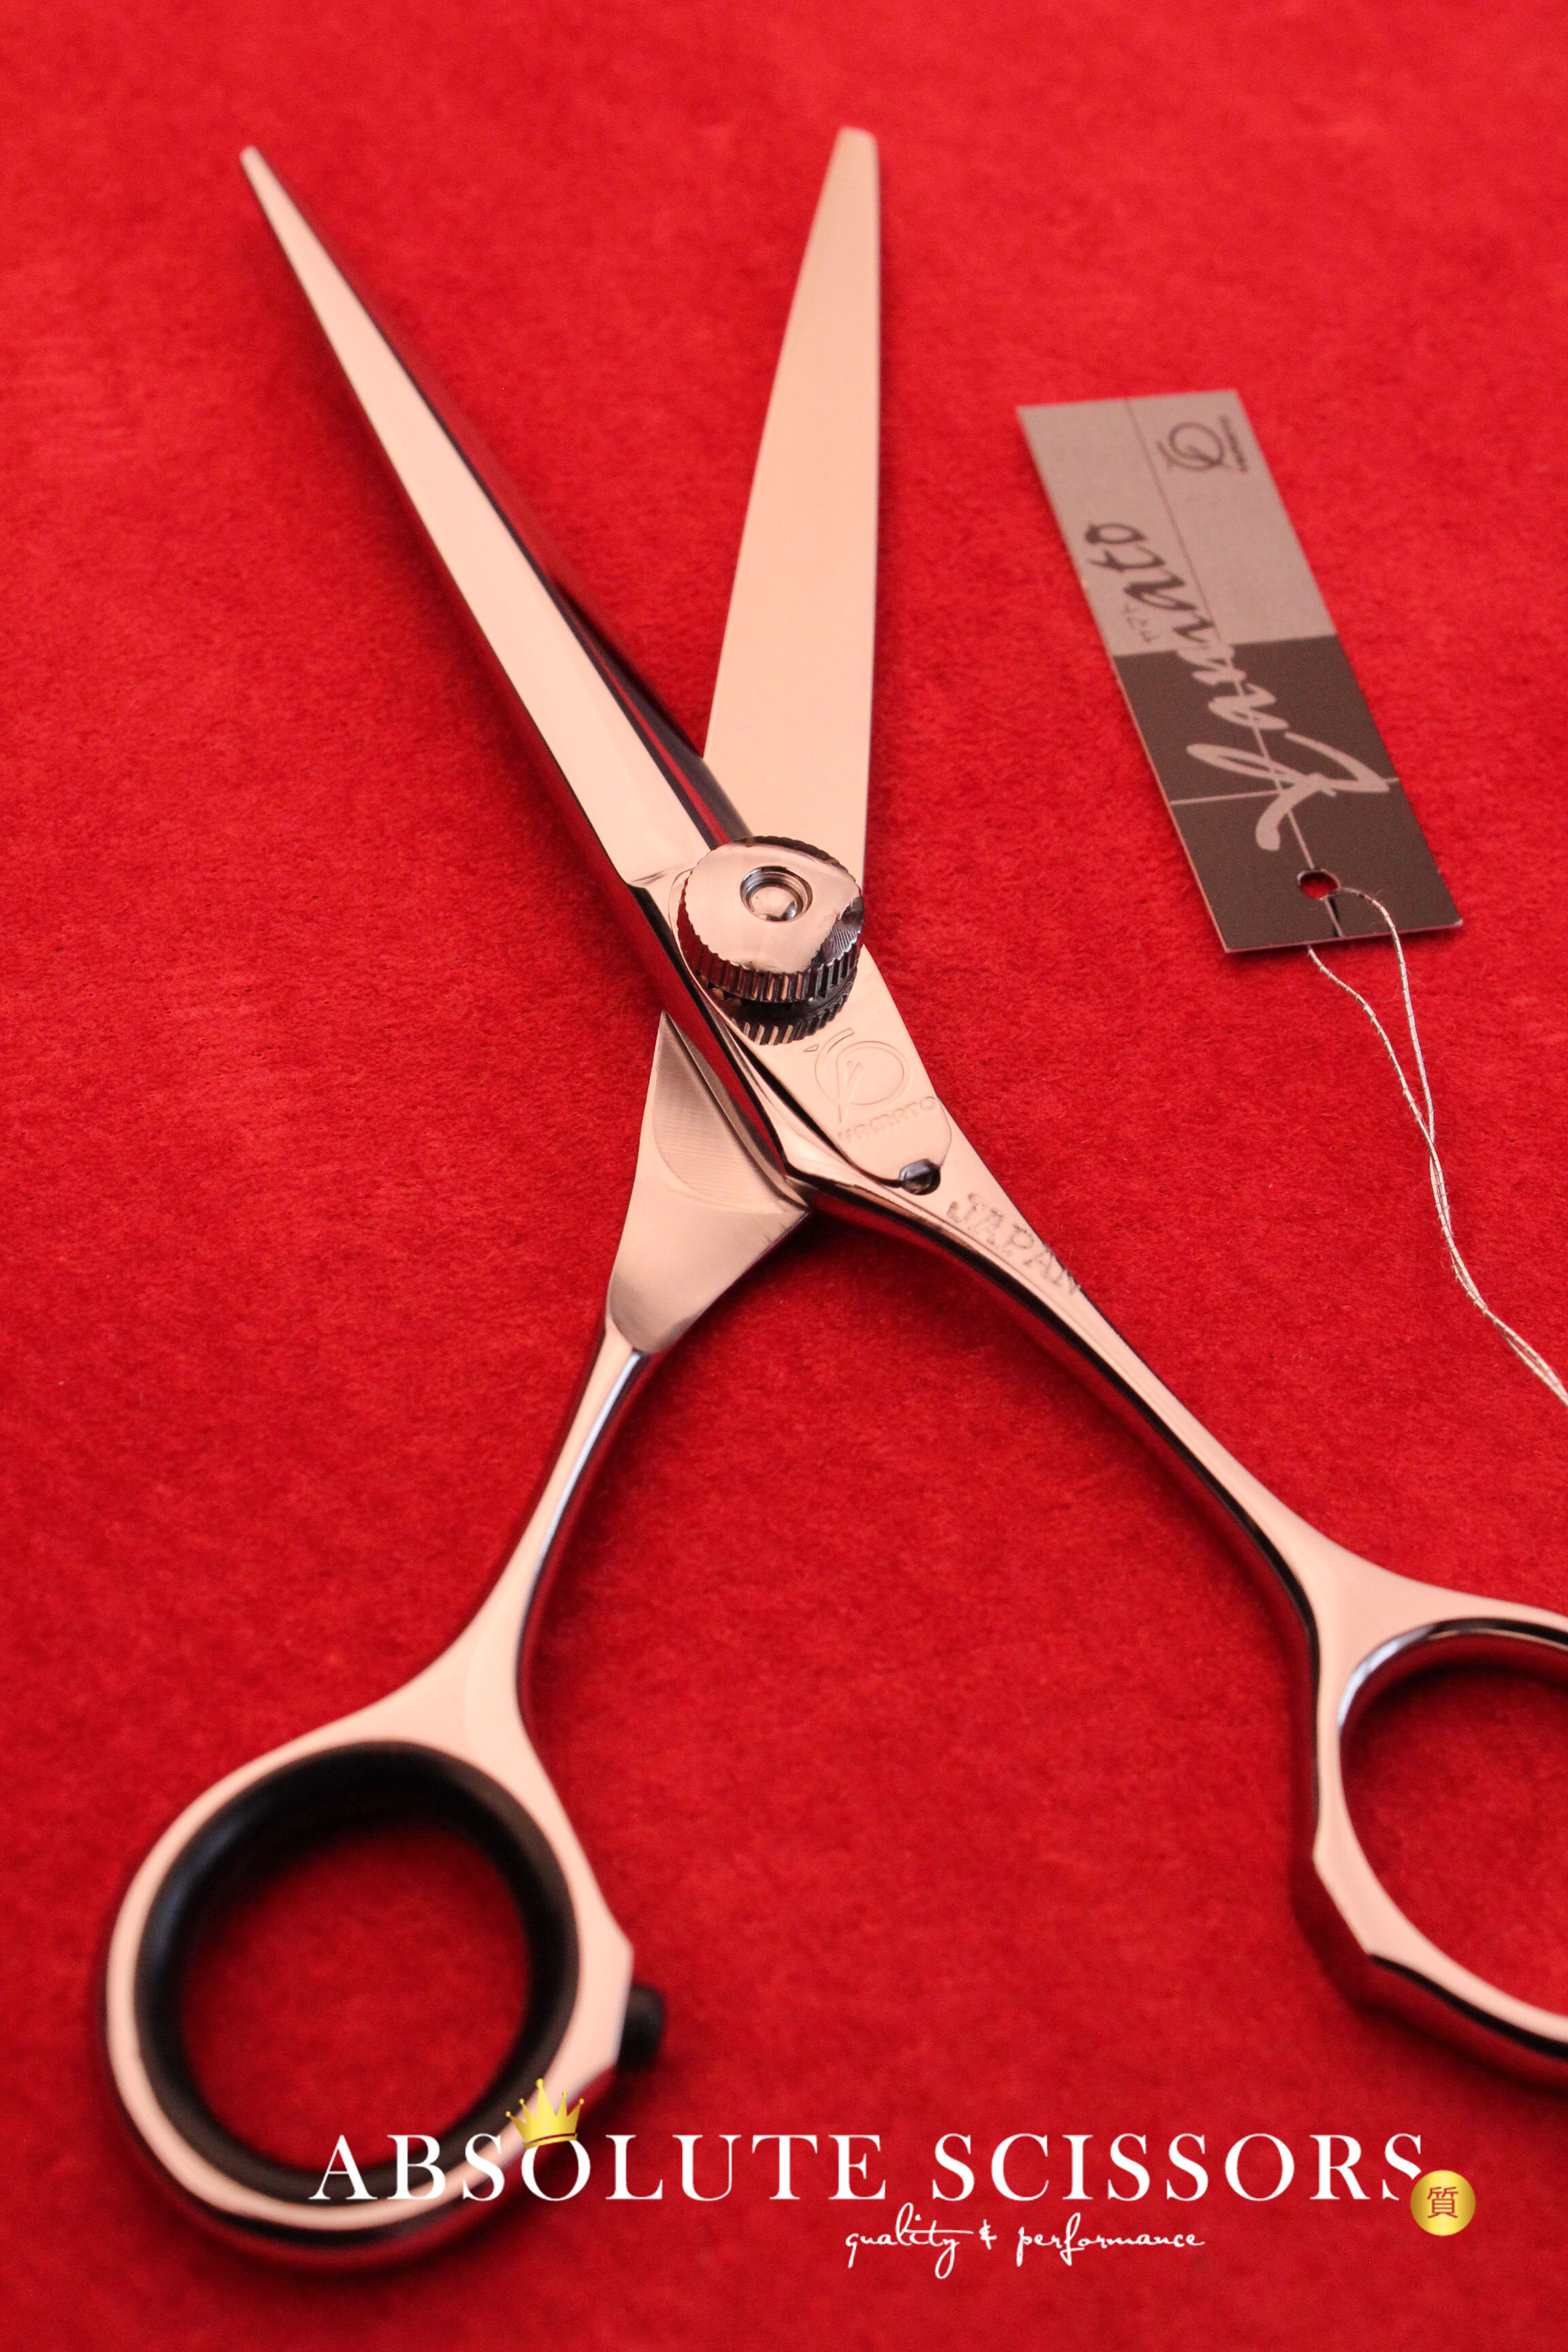 Elite YV60 3678 Yamato hair scissors shears size 6 inches